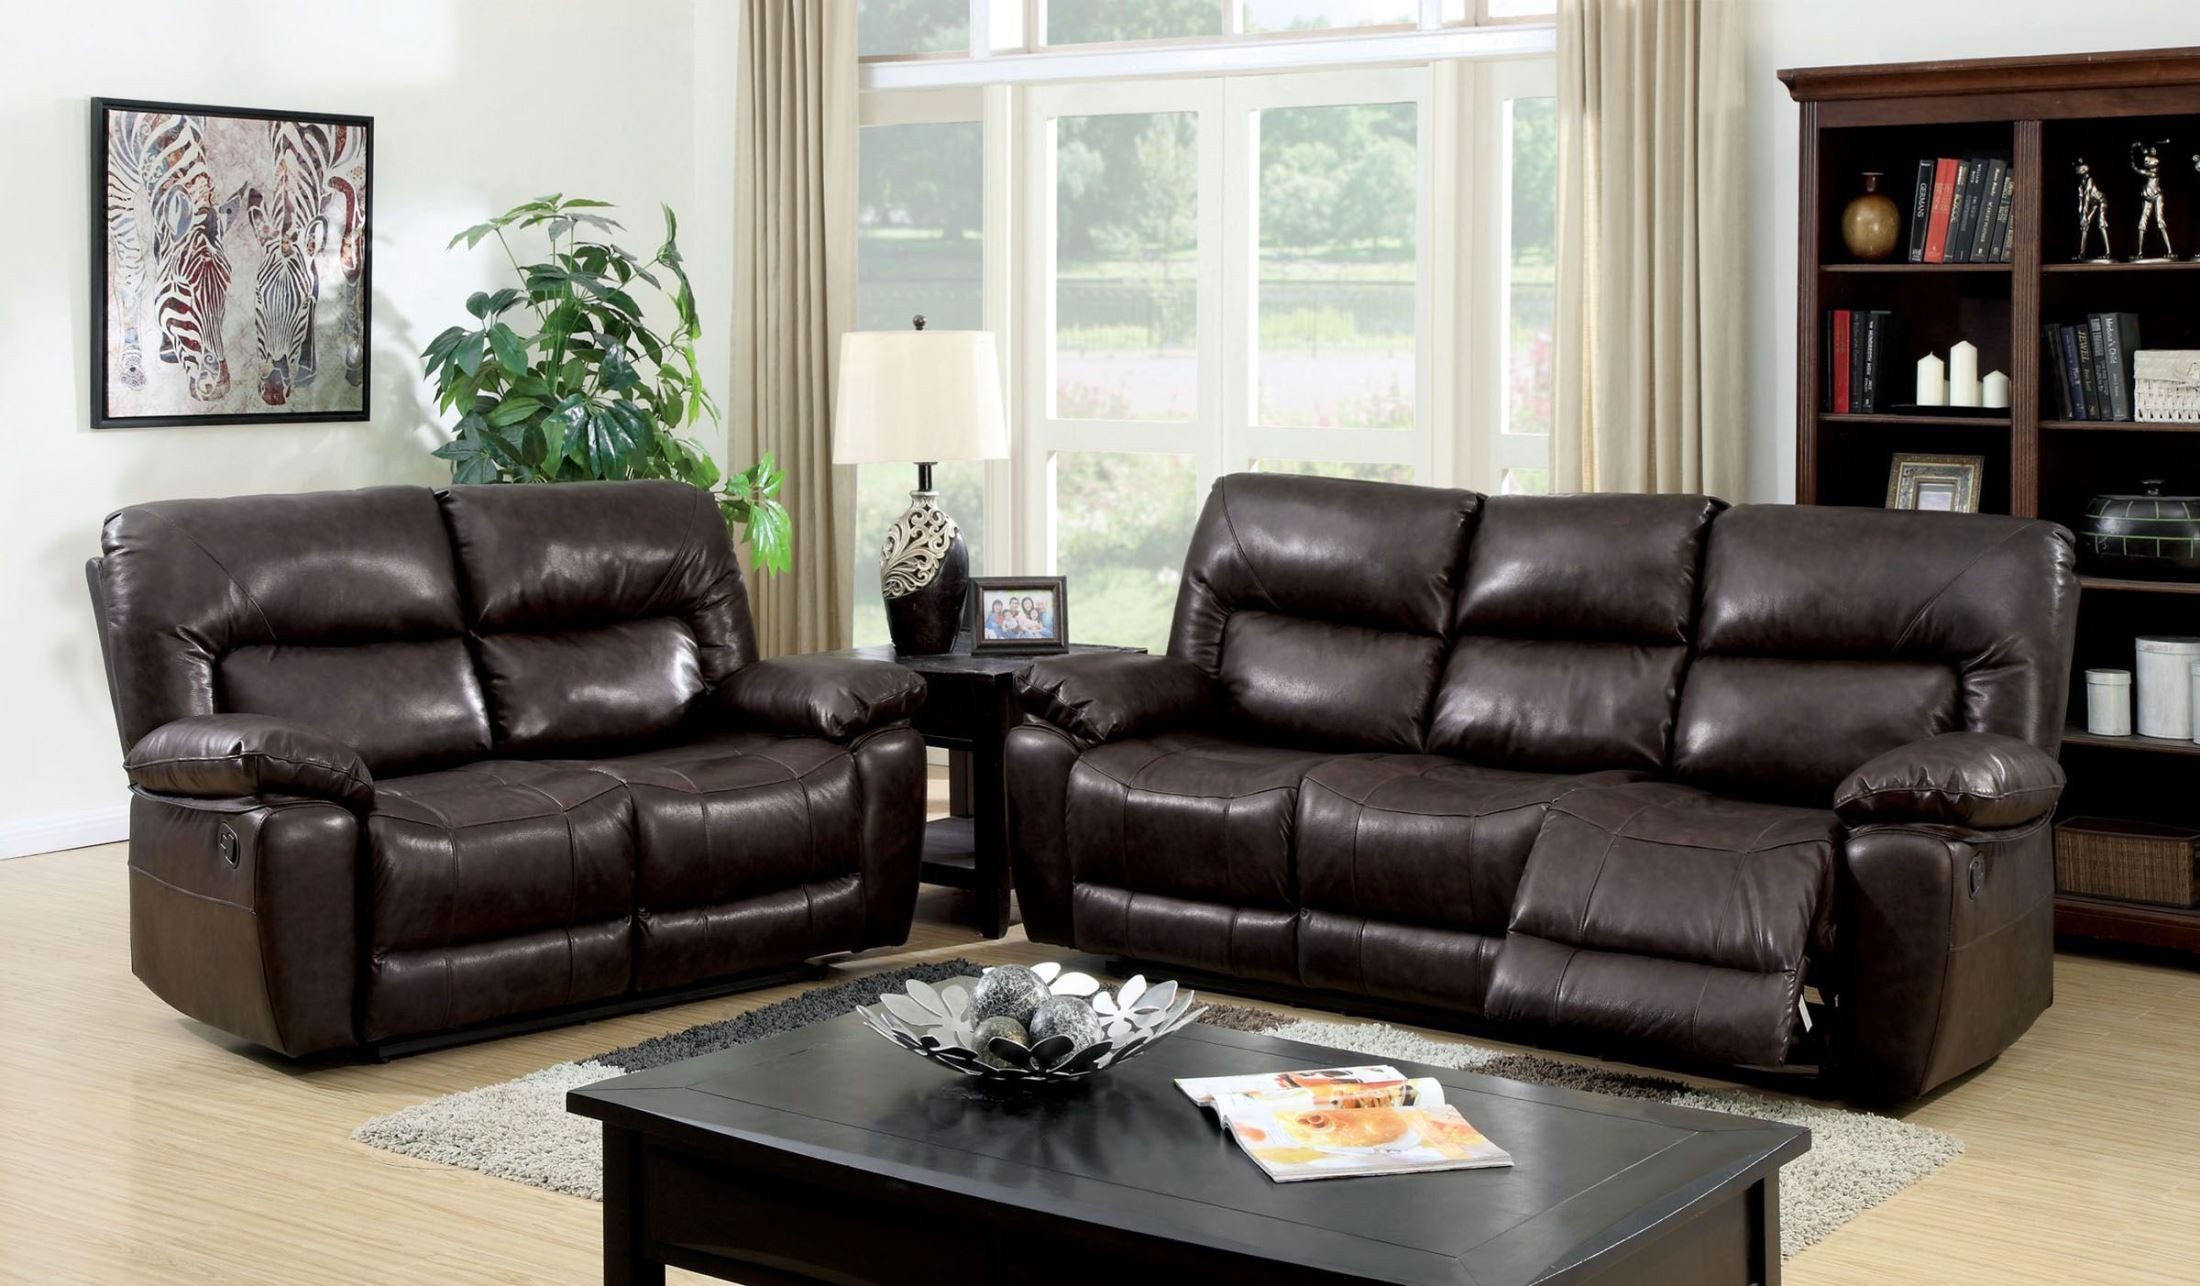 Stallion top grain leather match reclining living room set for Matching living room chairs